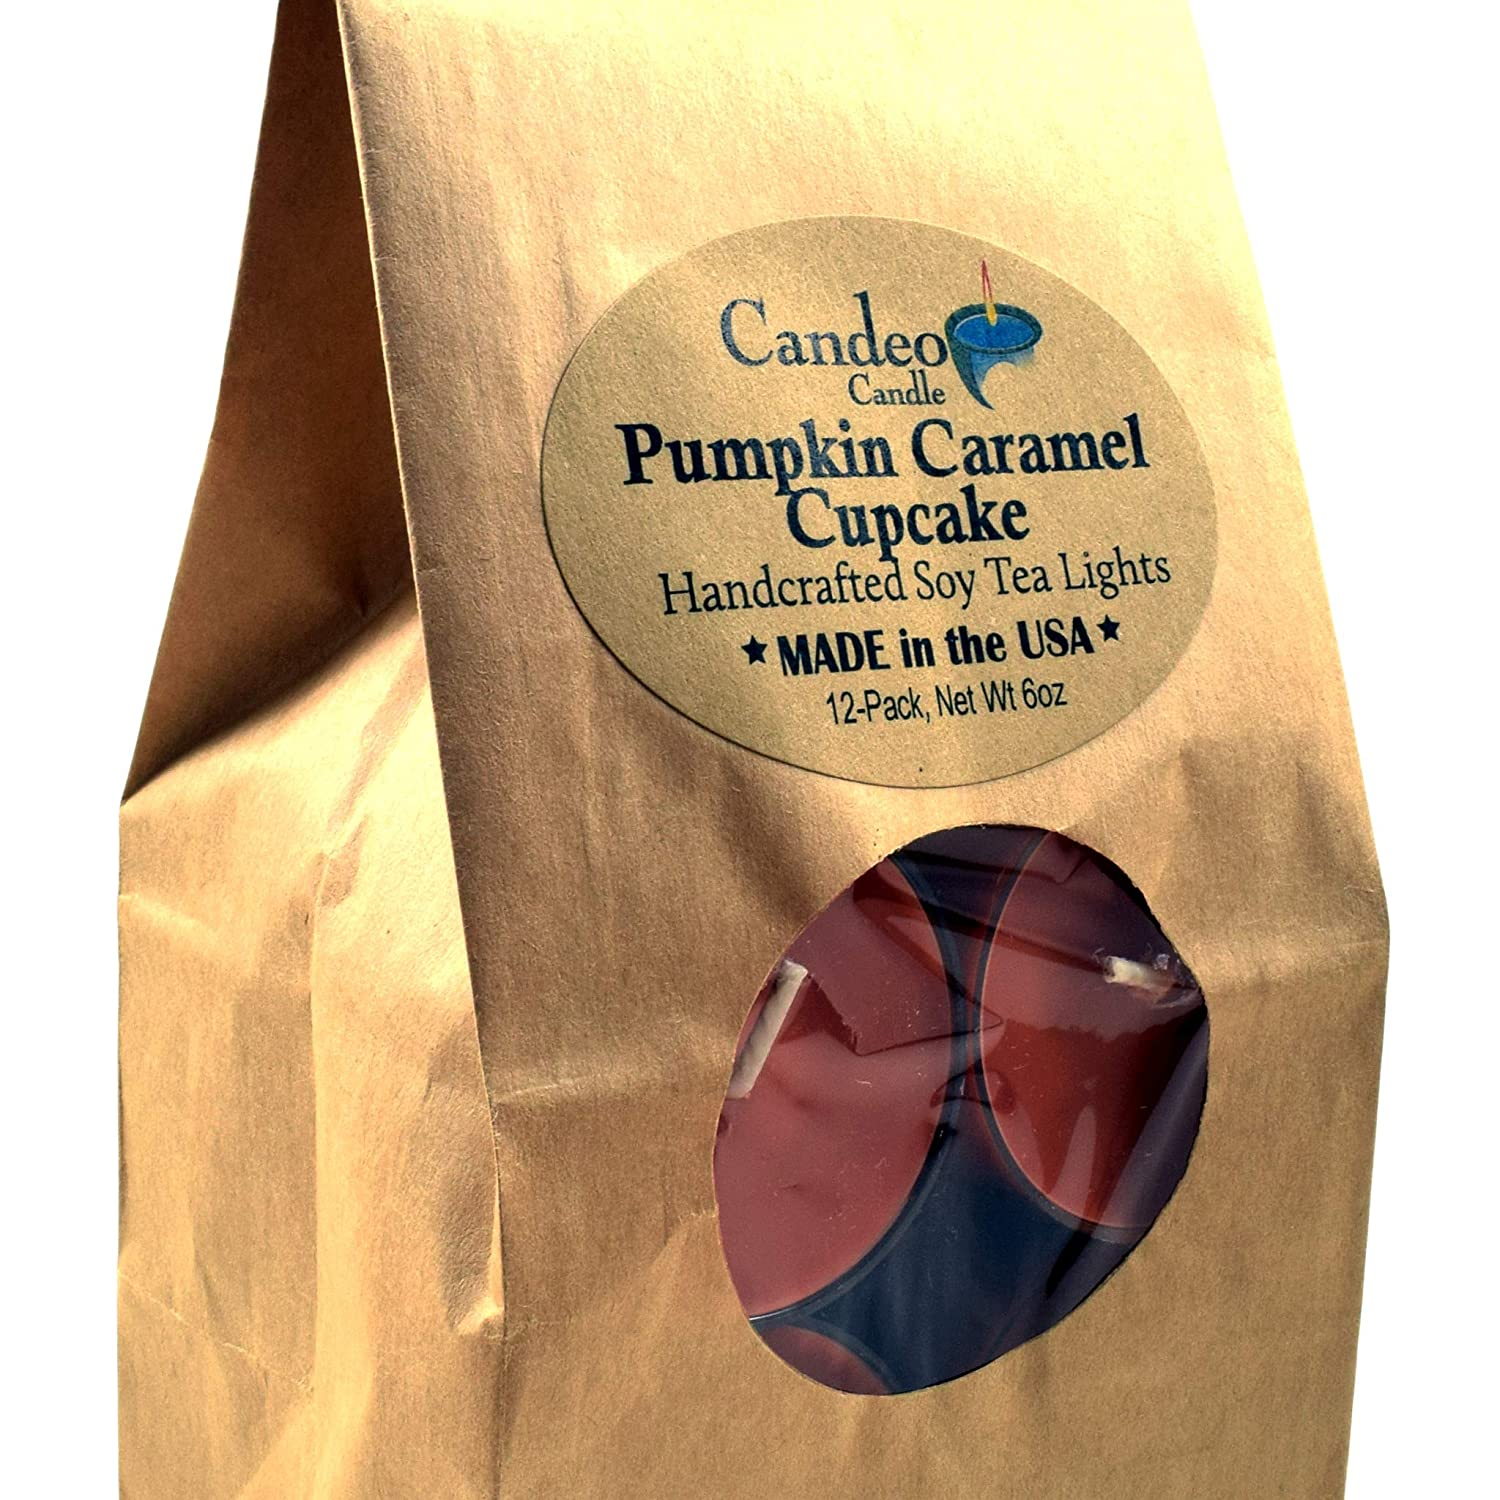 Pumpkin Caramel Cupcake, Fall Scented Soy Tealights, 12 Pack Clear Cup Candles, Autumn Scented Candeo Candle 13597